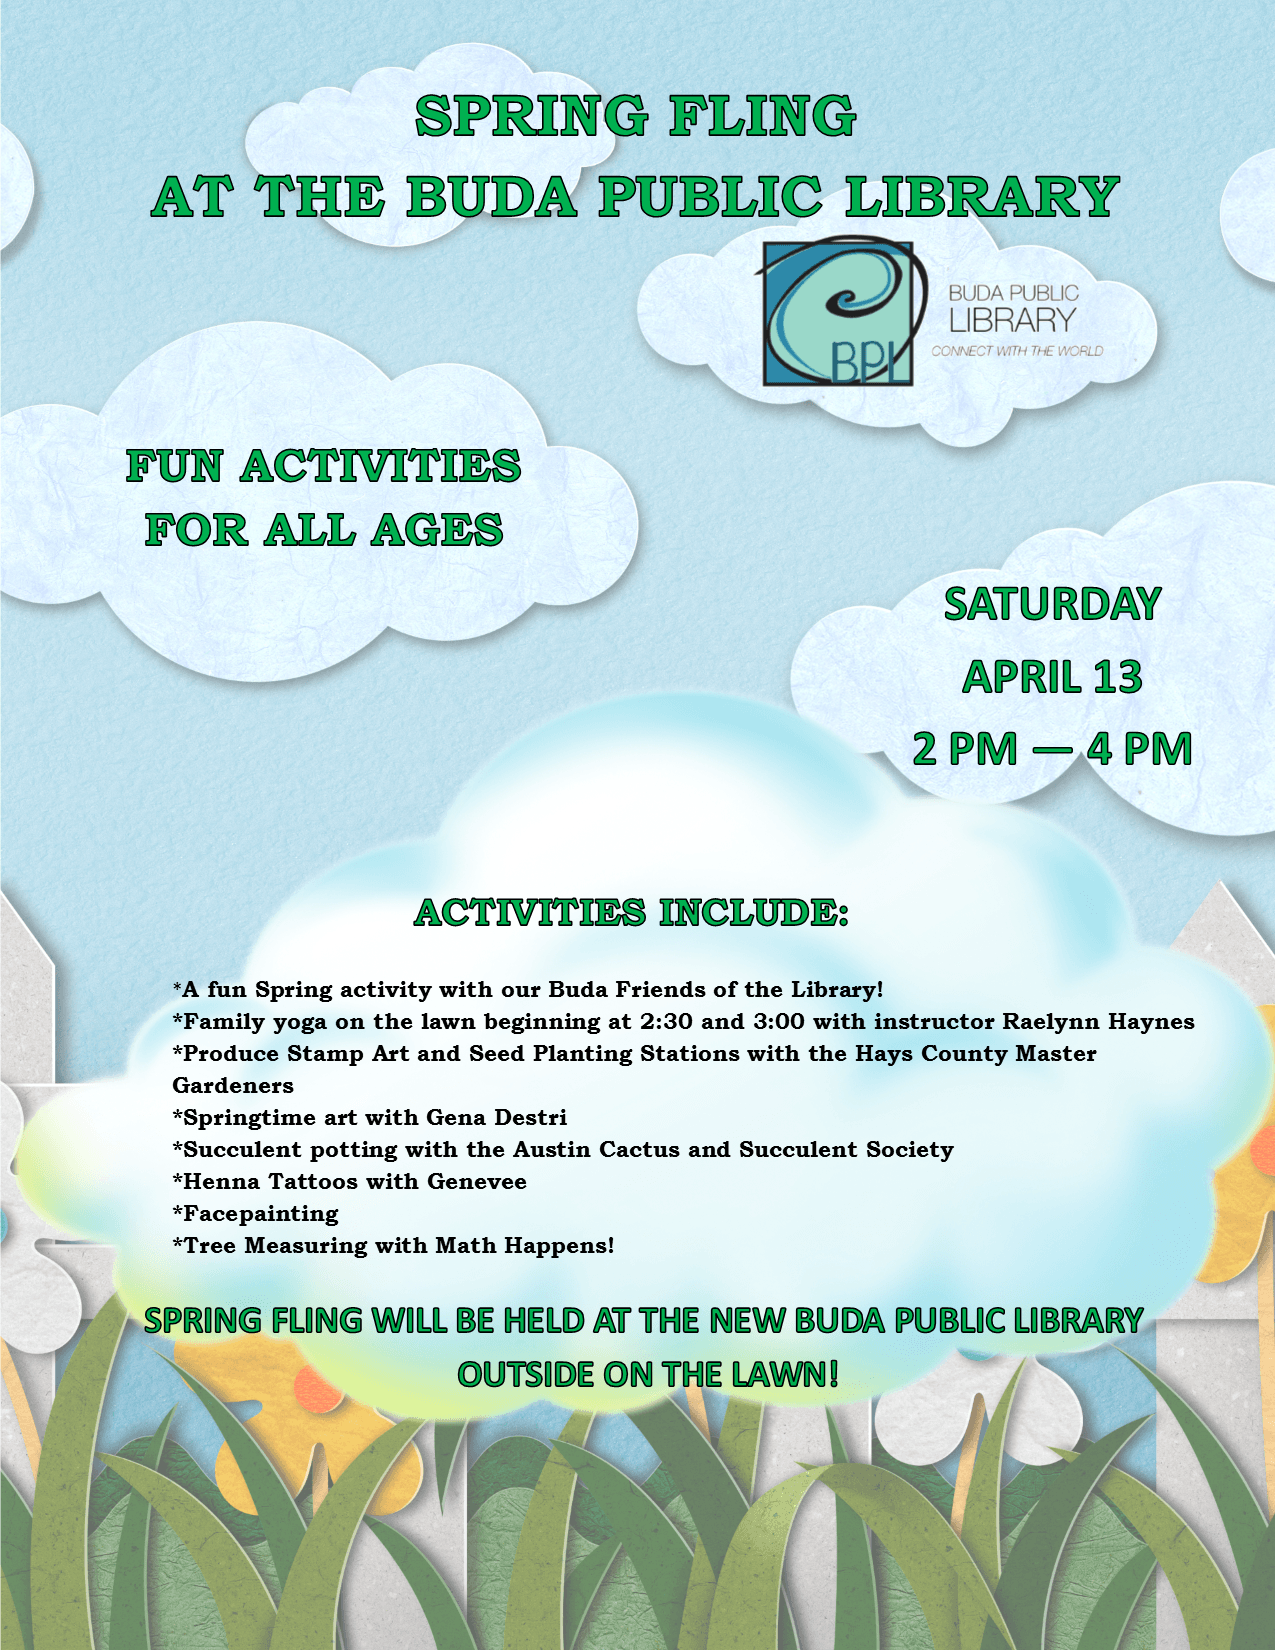 Spring Fling at the Buda Public Library - Saturday,  April 13, 2019